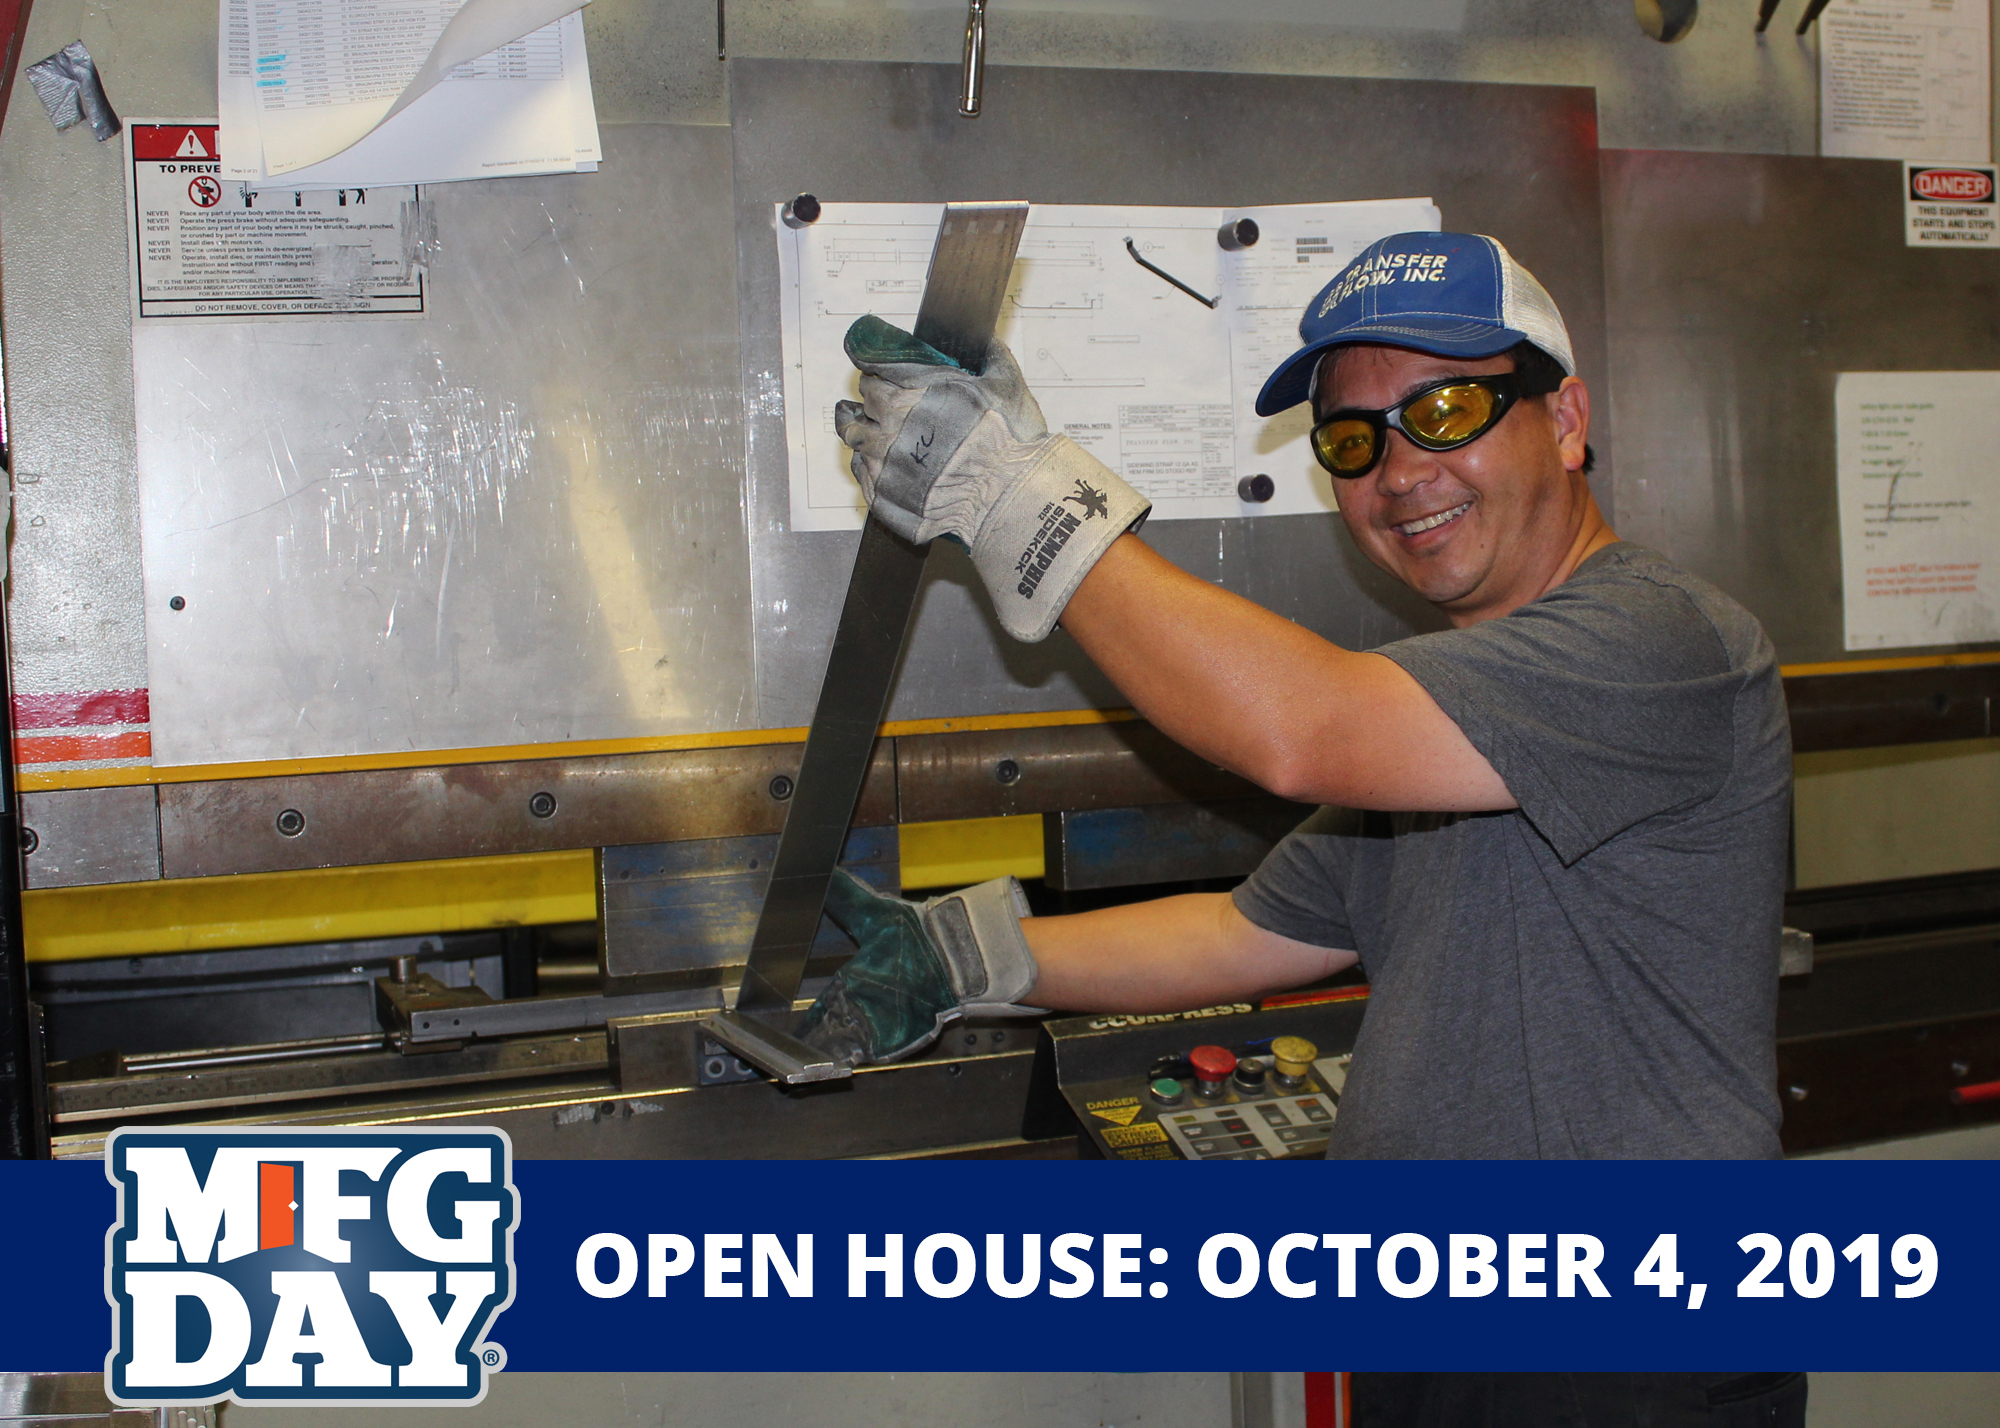 manufacturing-day-2019-open-house.jpg